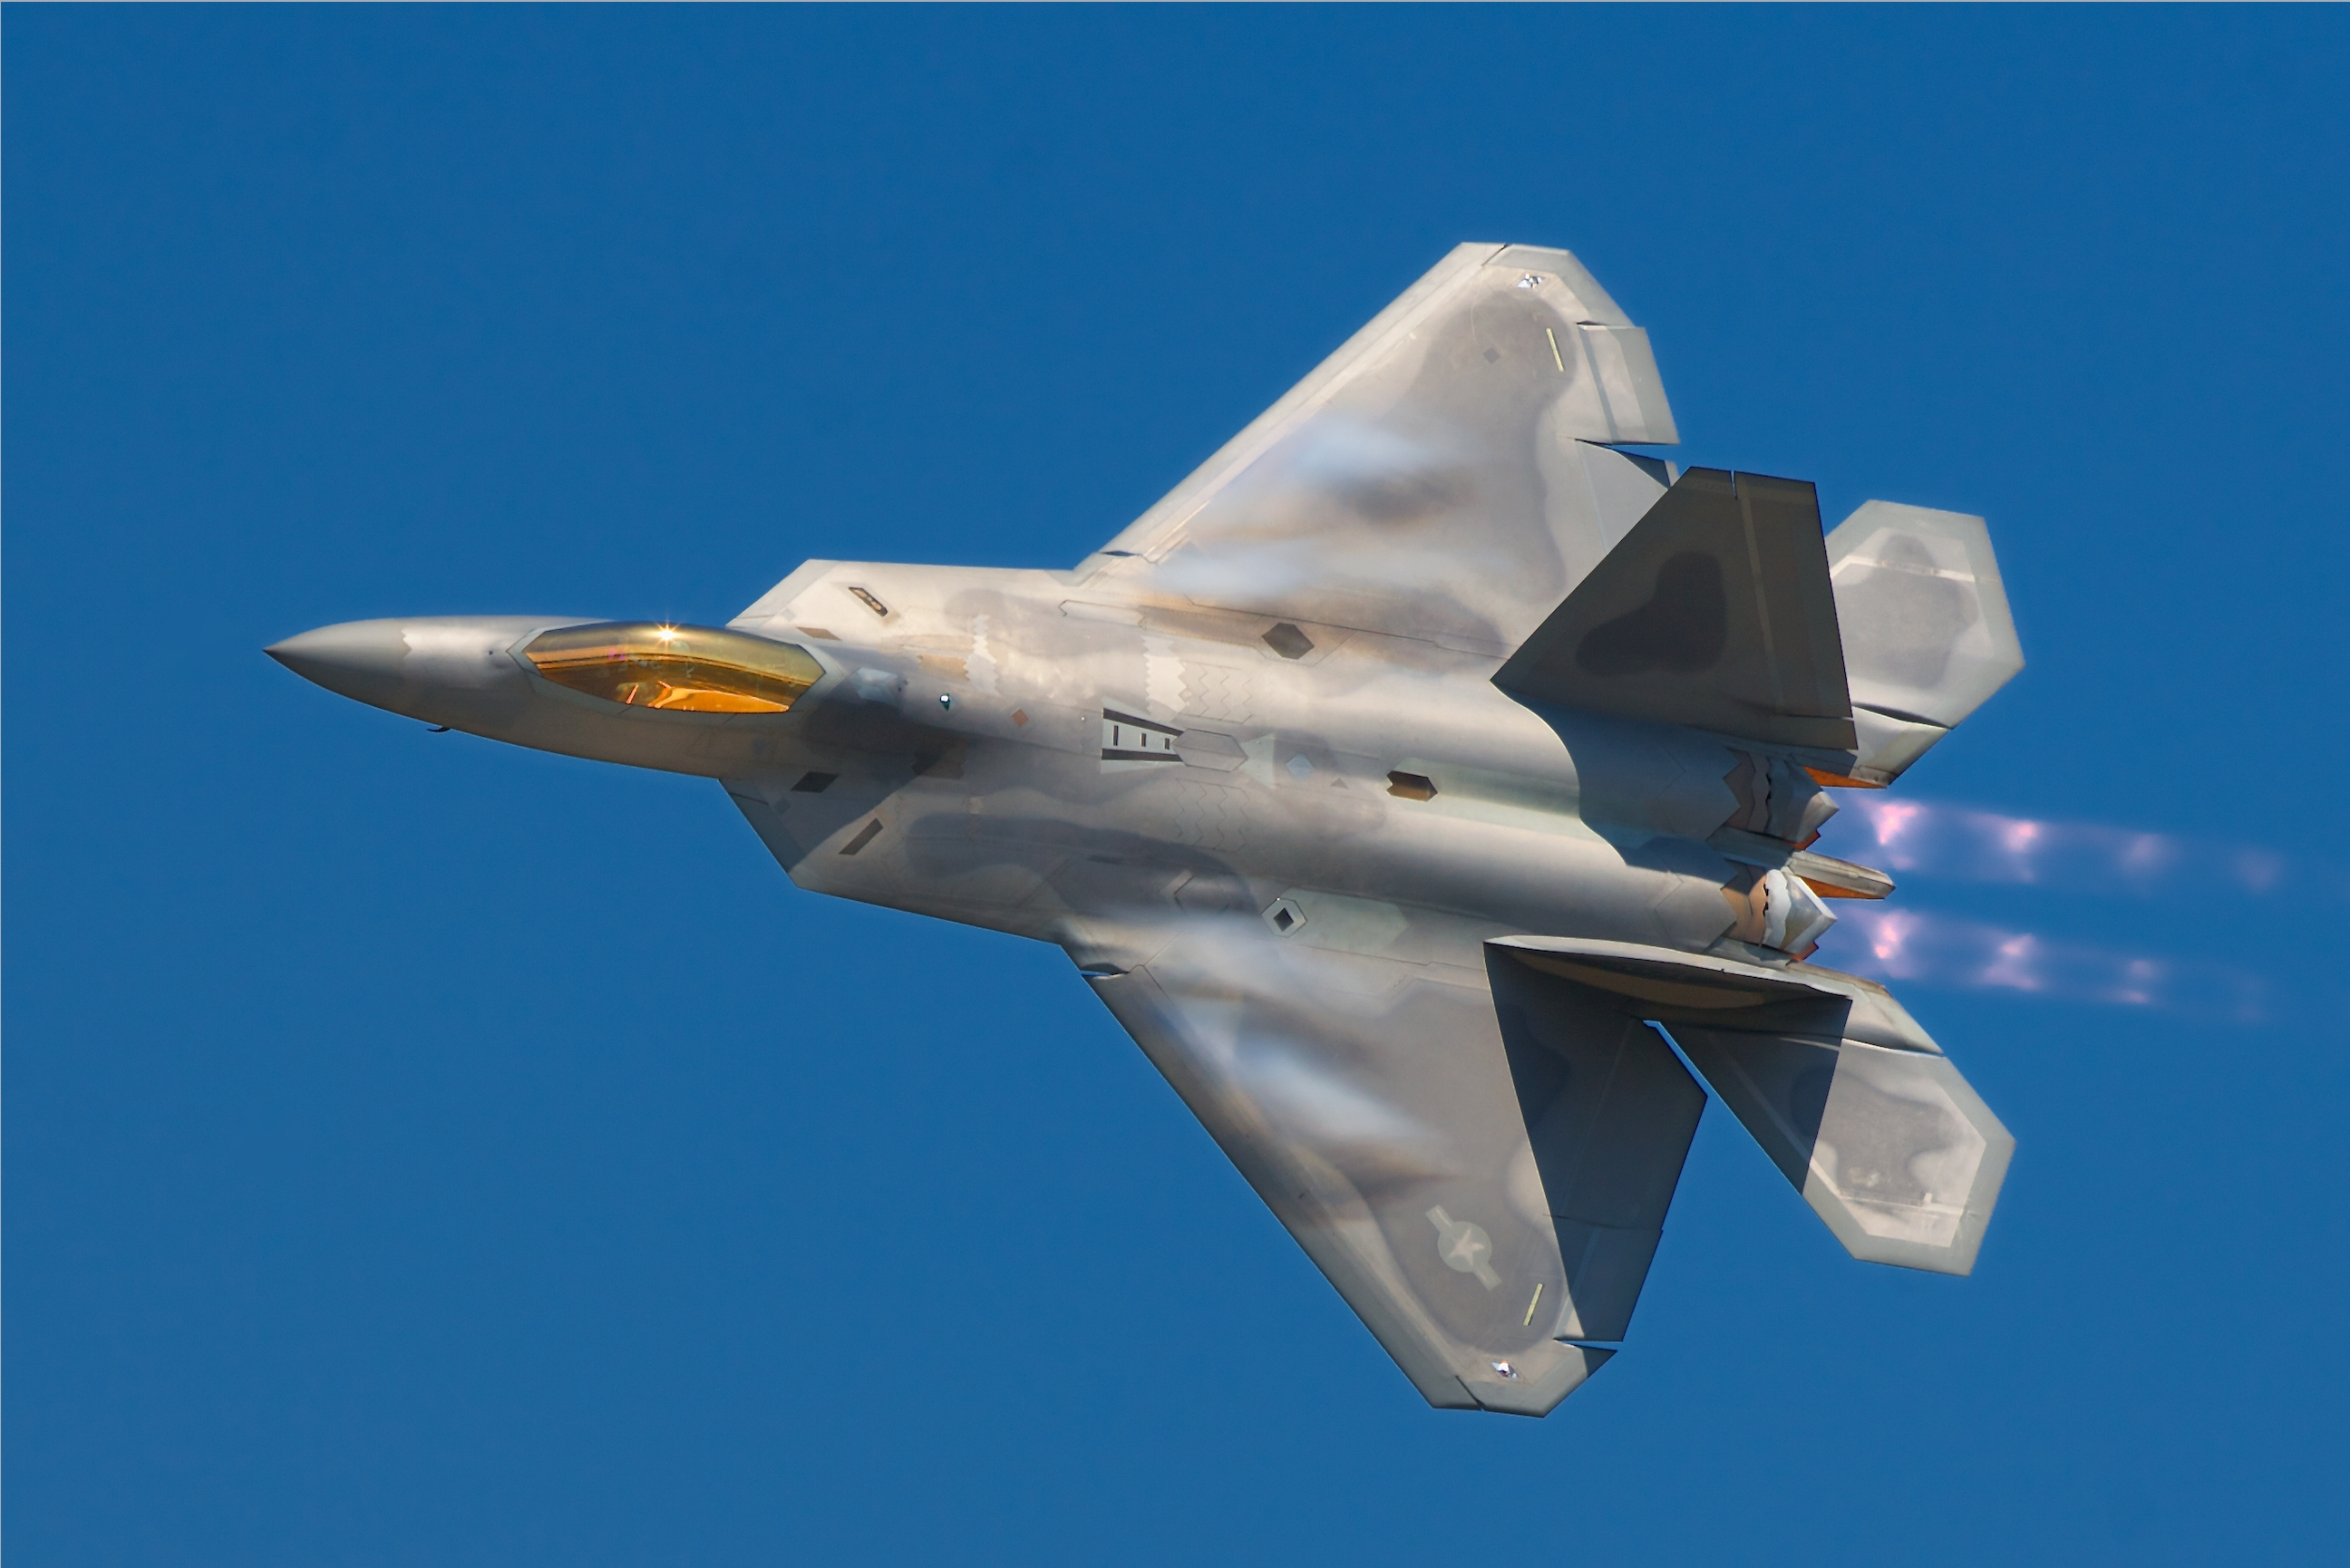 http://upload.wikimedia.org/wikipedia/commons/b/bd/F-22_Raptor_at_the_2008_Joint_Services_Open_House_airshow_6.jpg